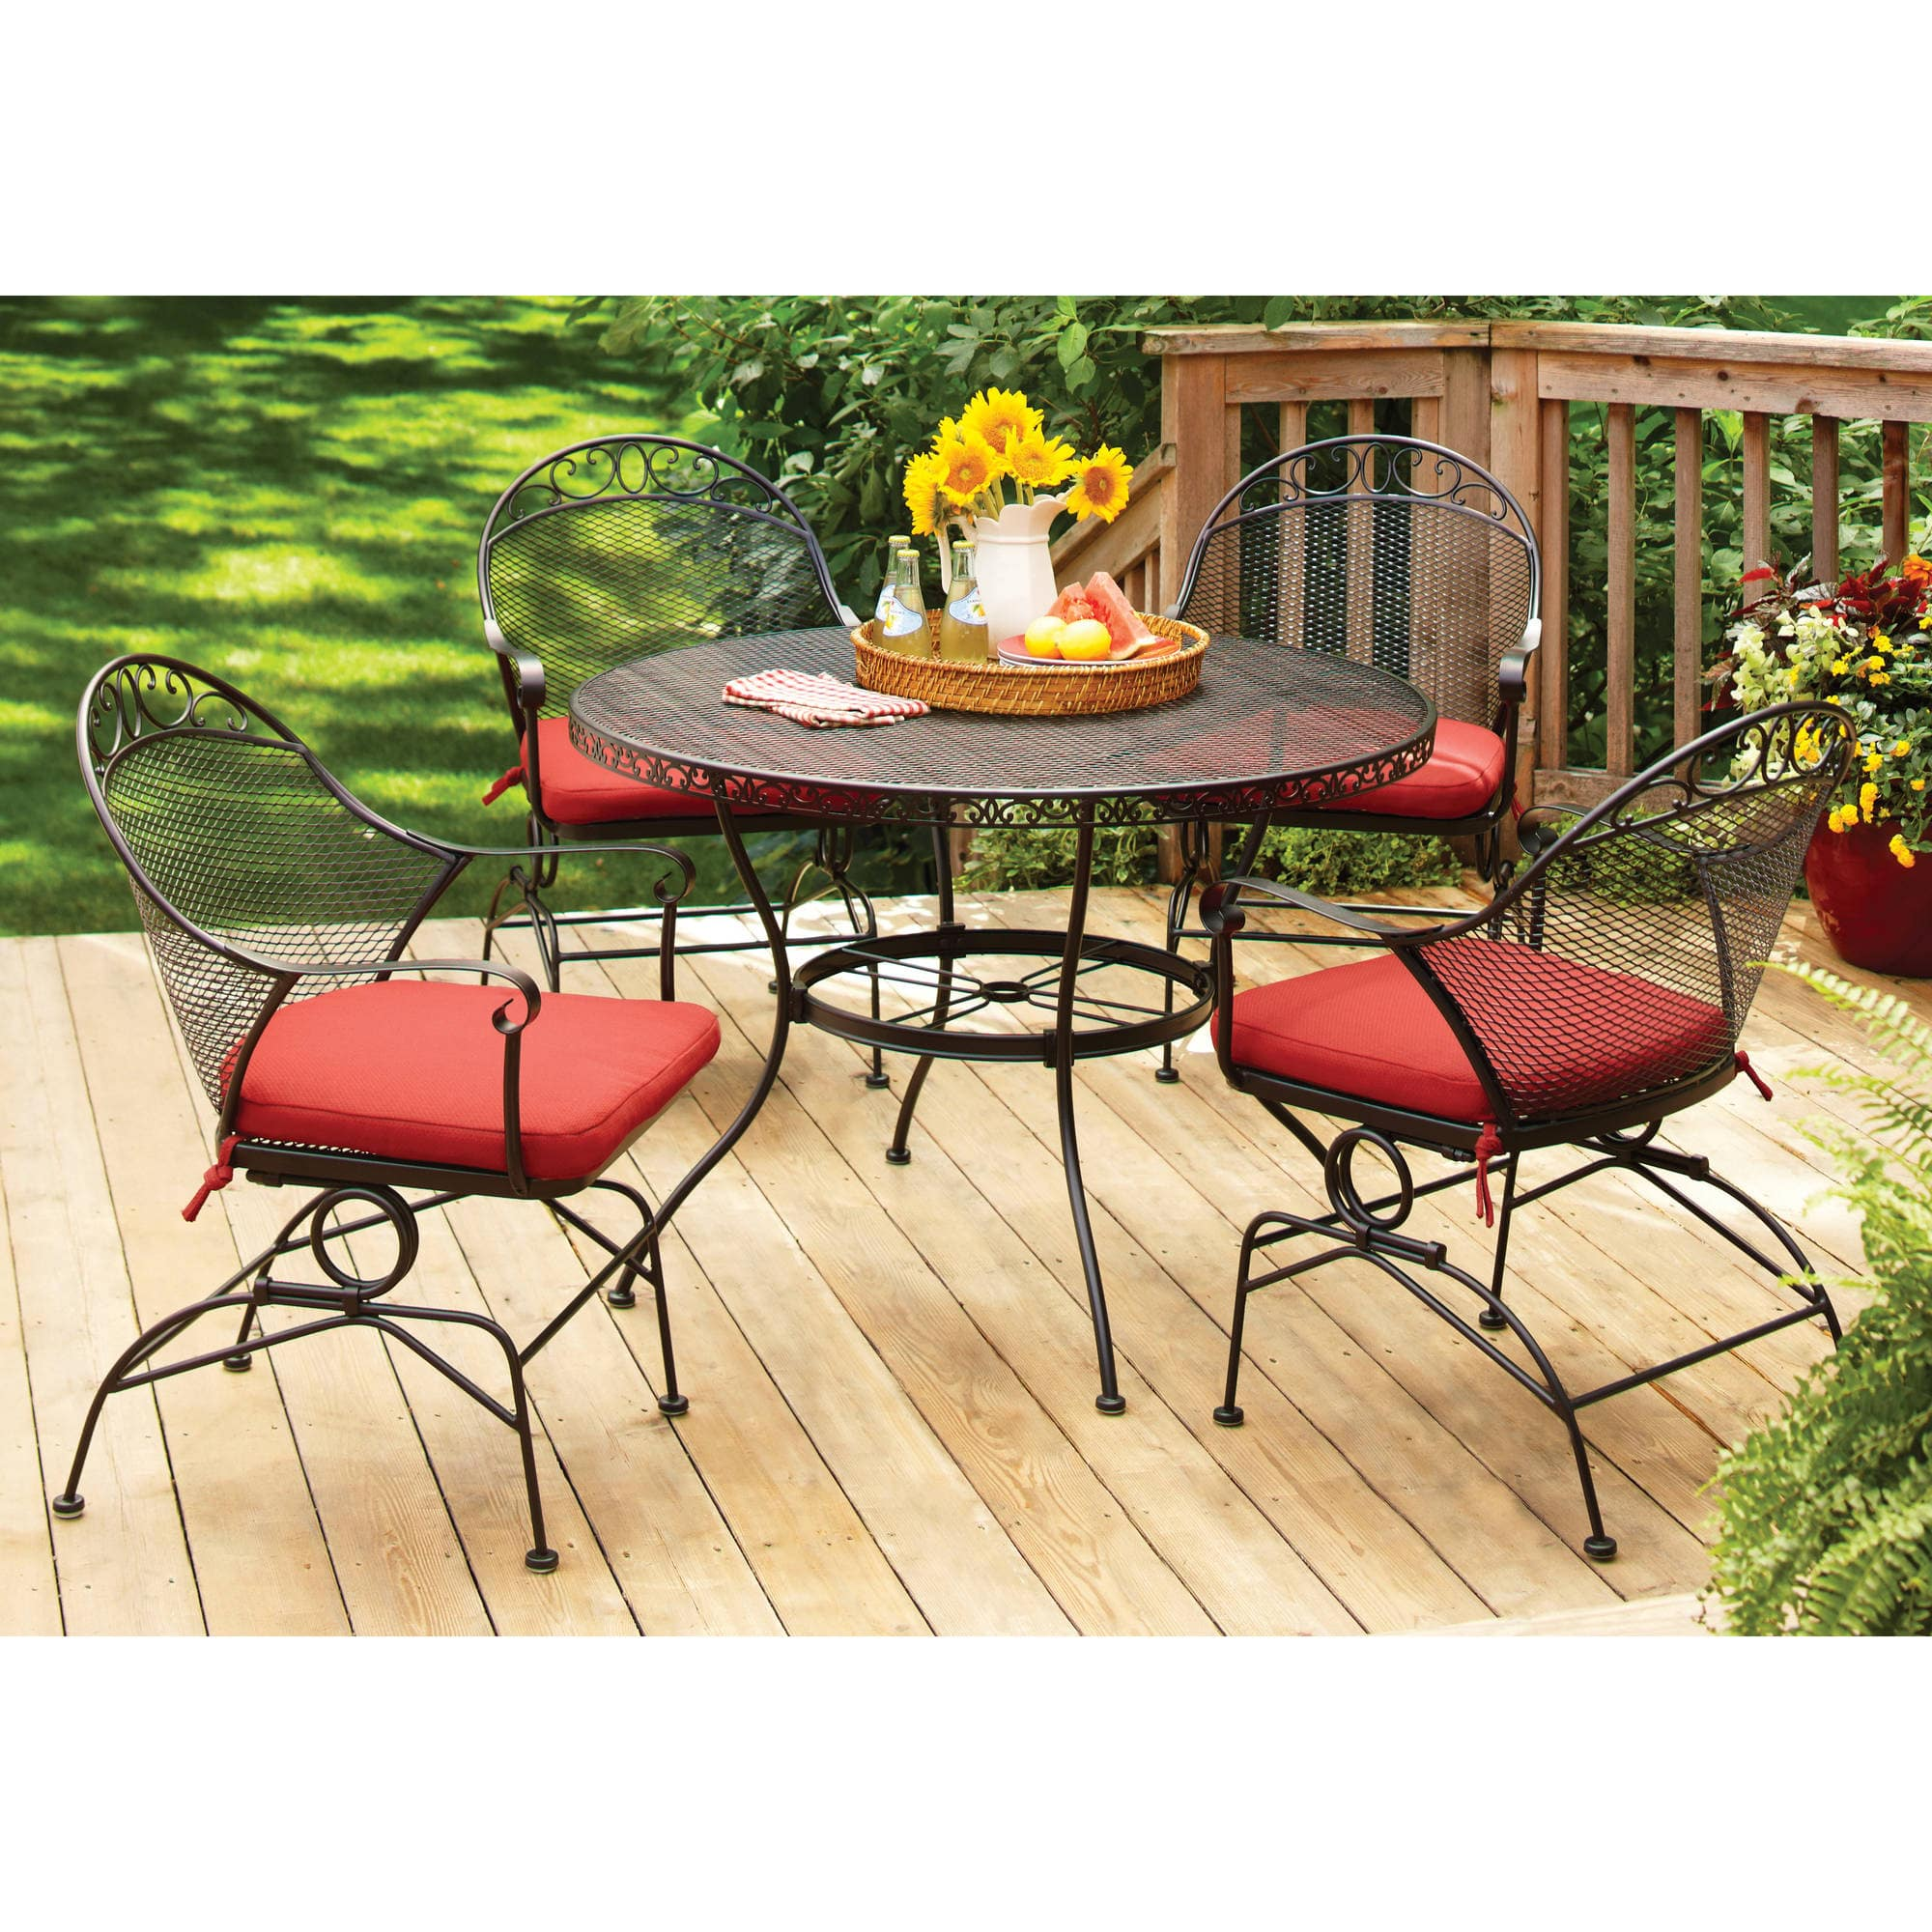 Walmart Better Homes and Gardens Clayton Ct 5 Piece Dining Set